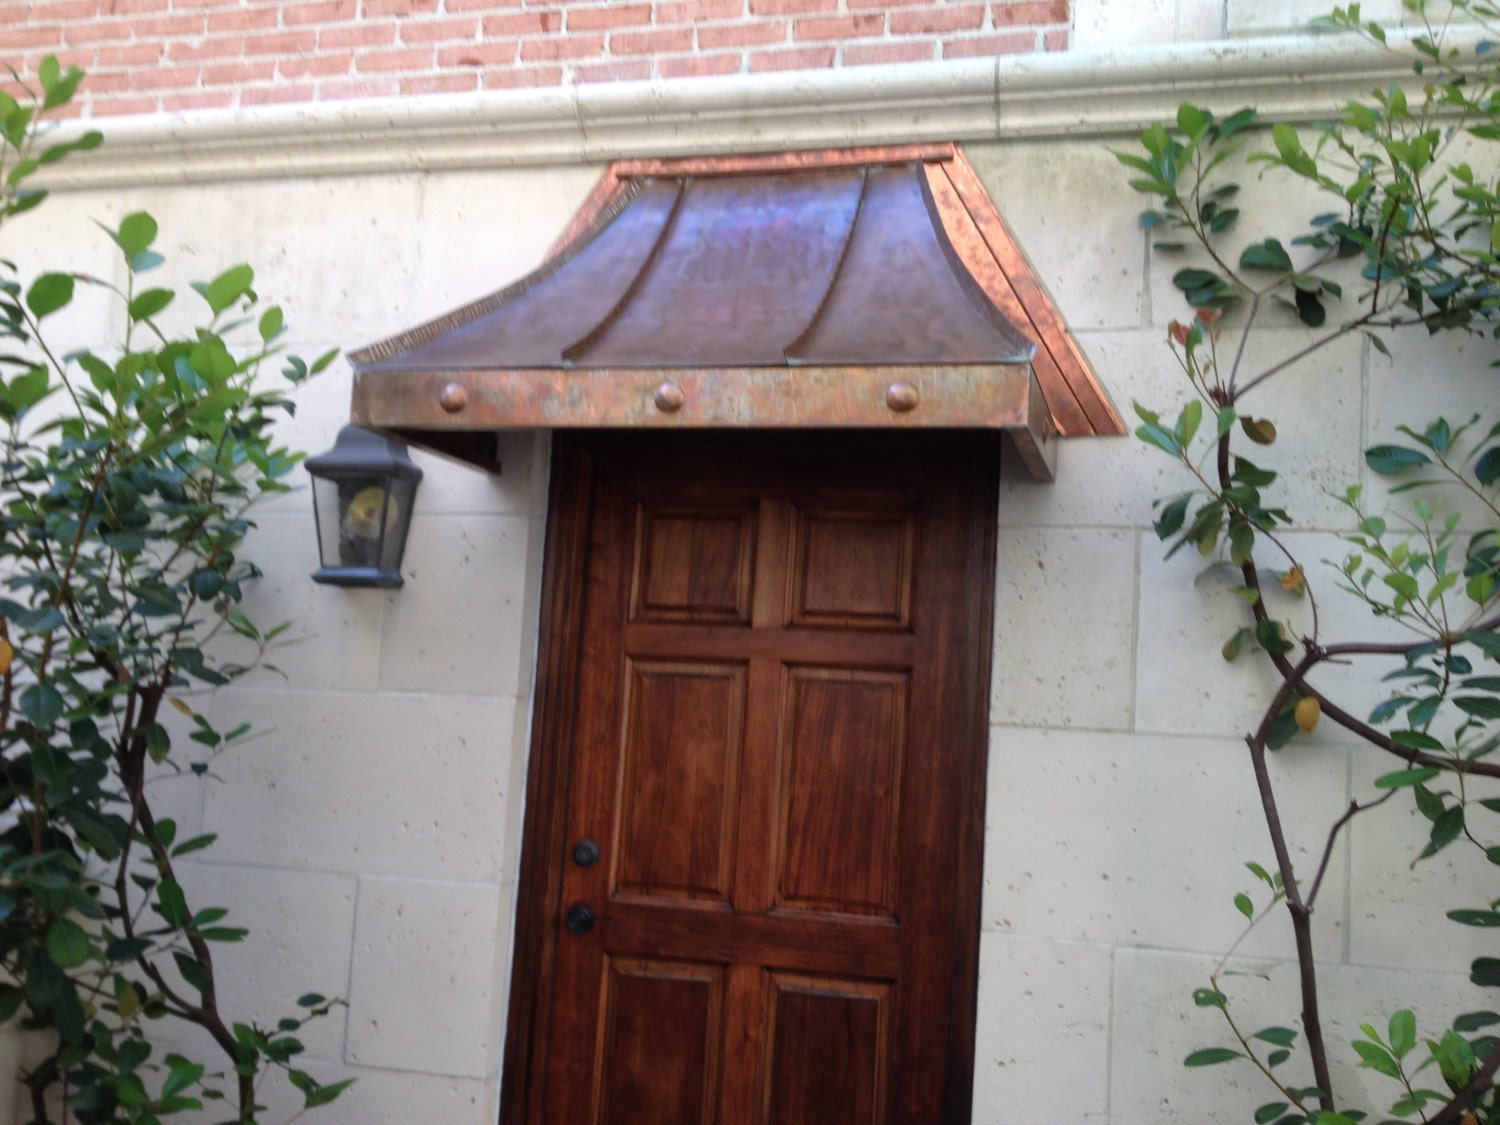 Exceptionnel Cypress Sweep Copper Awning* By ClassicCopper.com From ClassicCopperWorks  On Etsy Studio